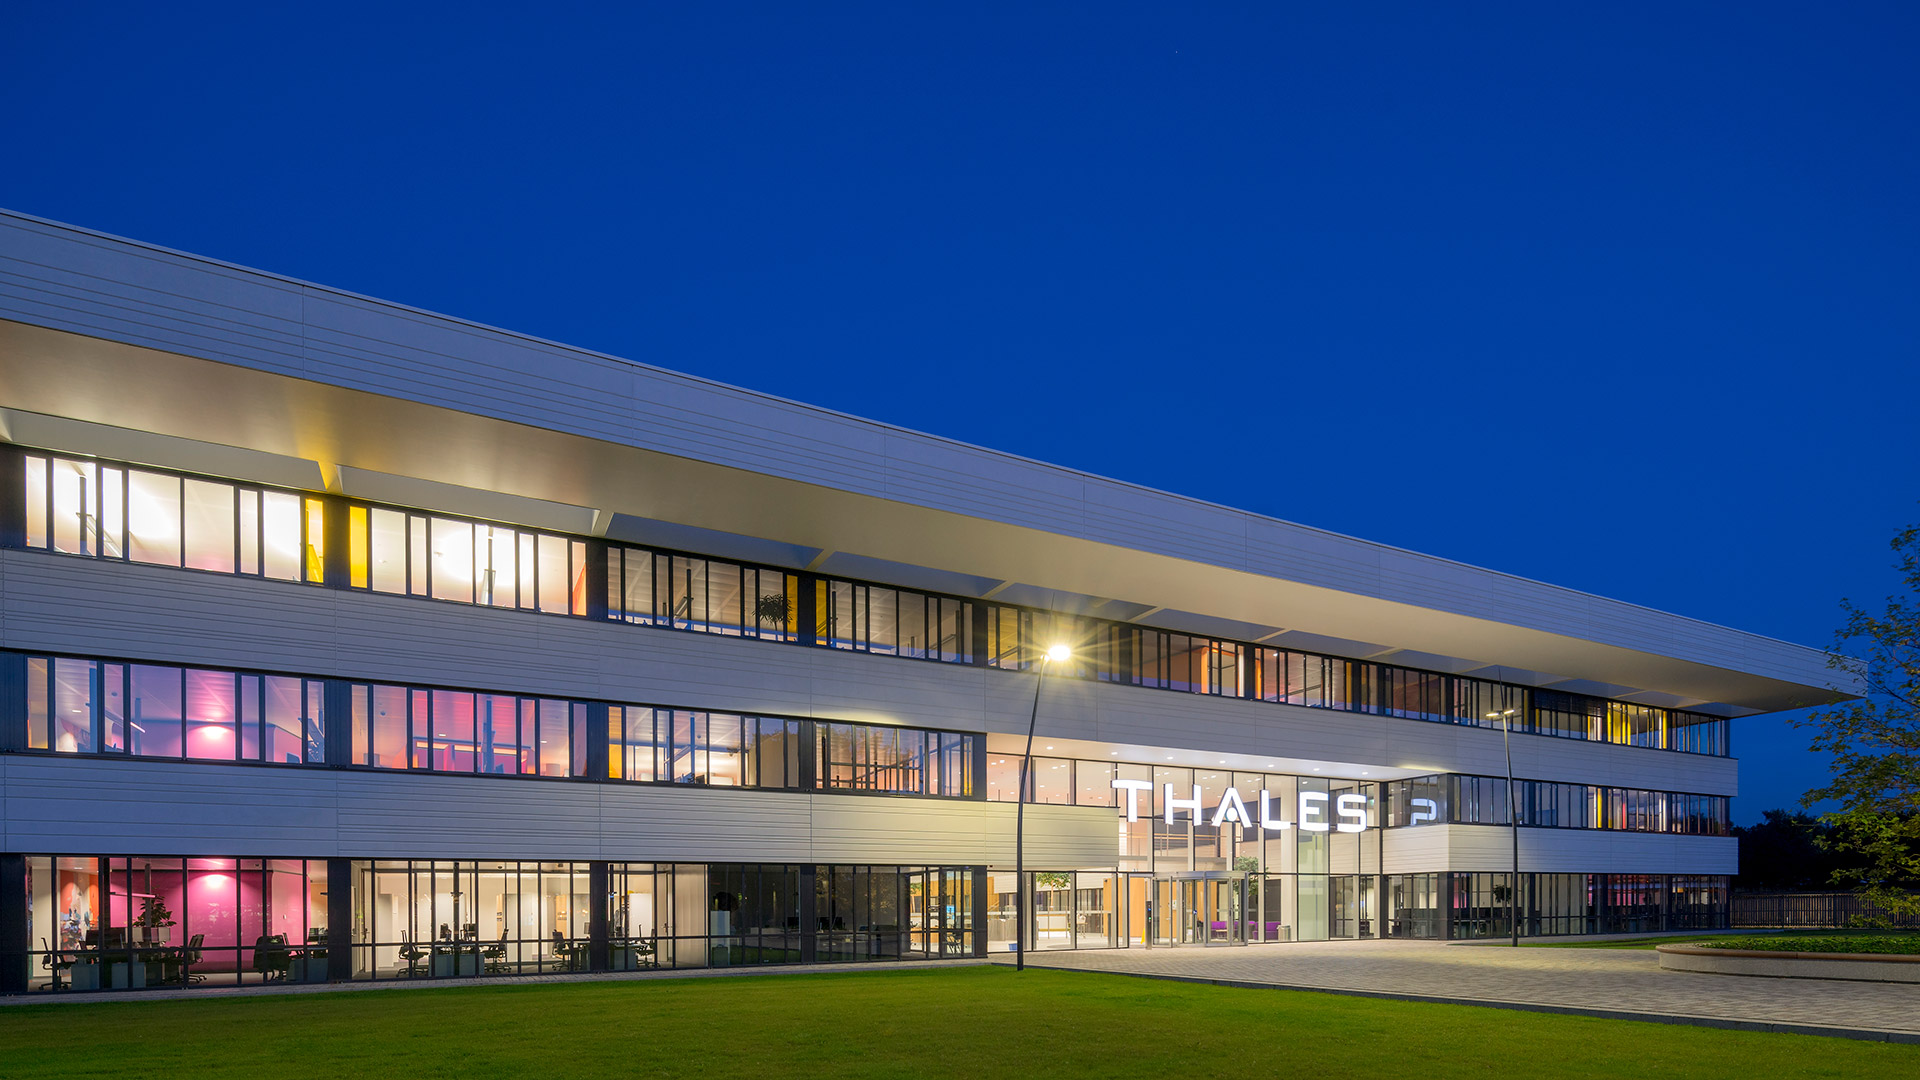 Thales-by-night-reitsema-and-partners-architects